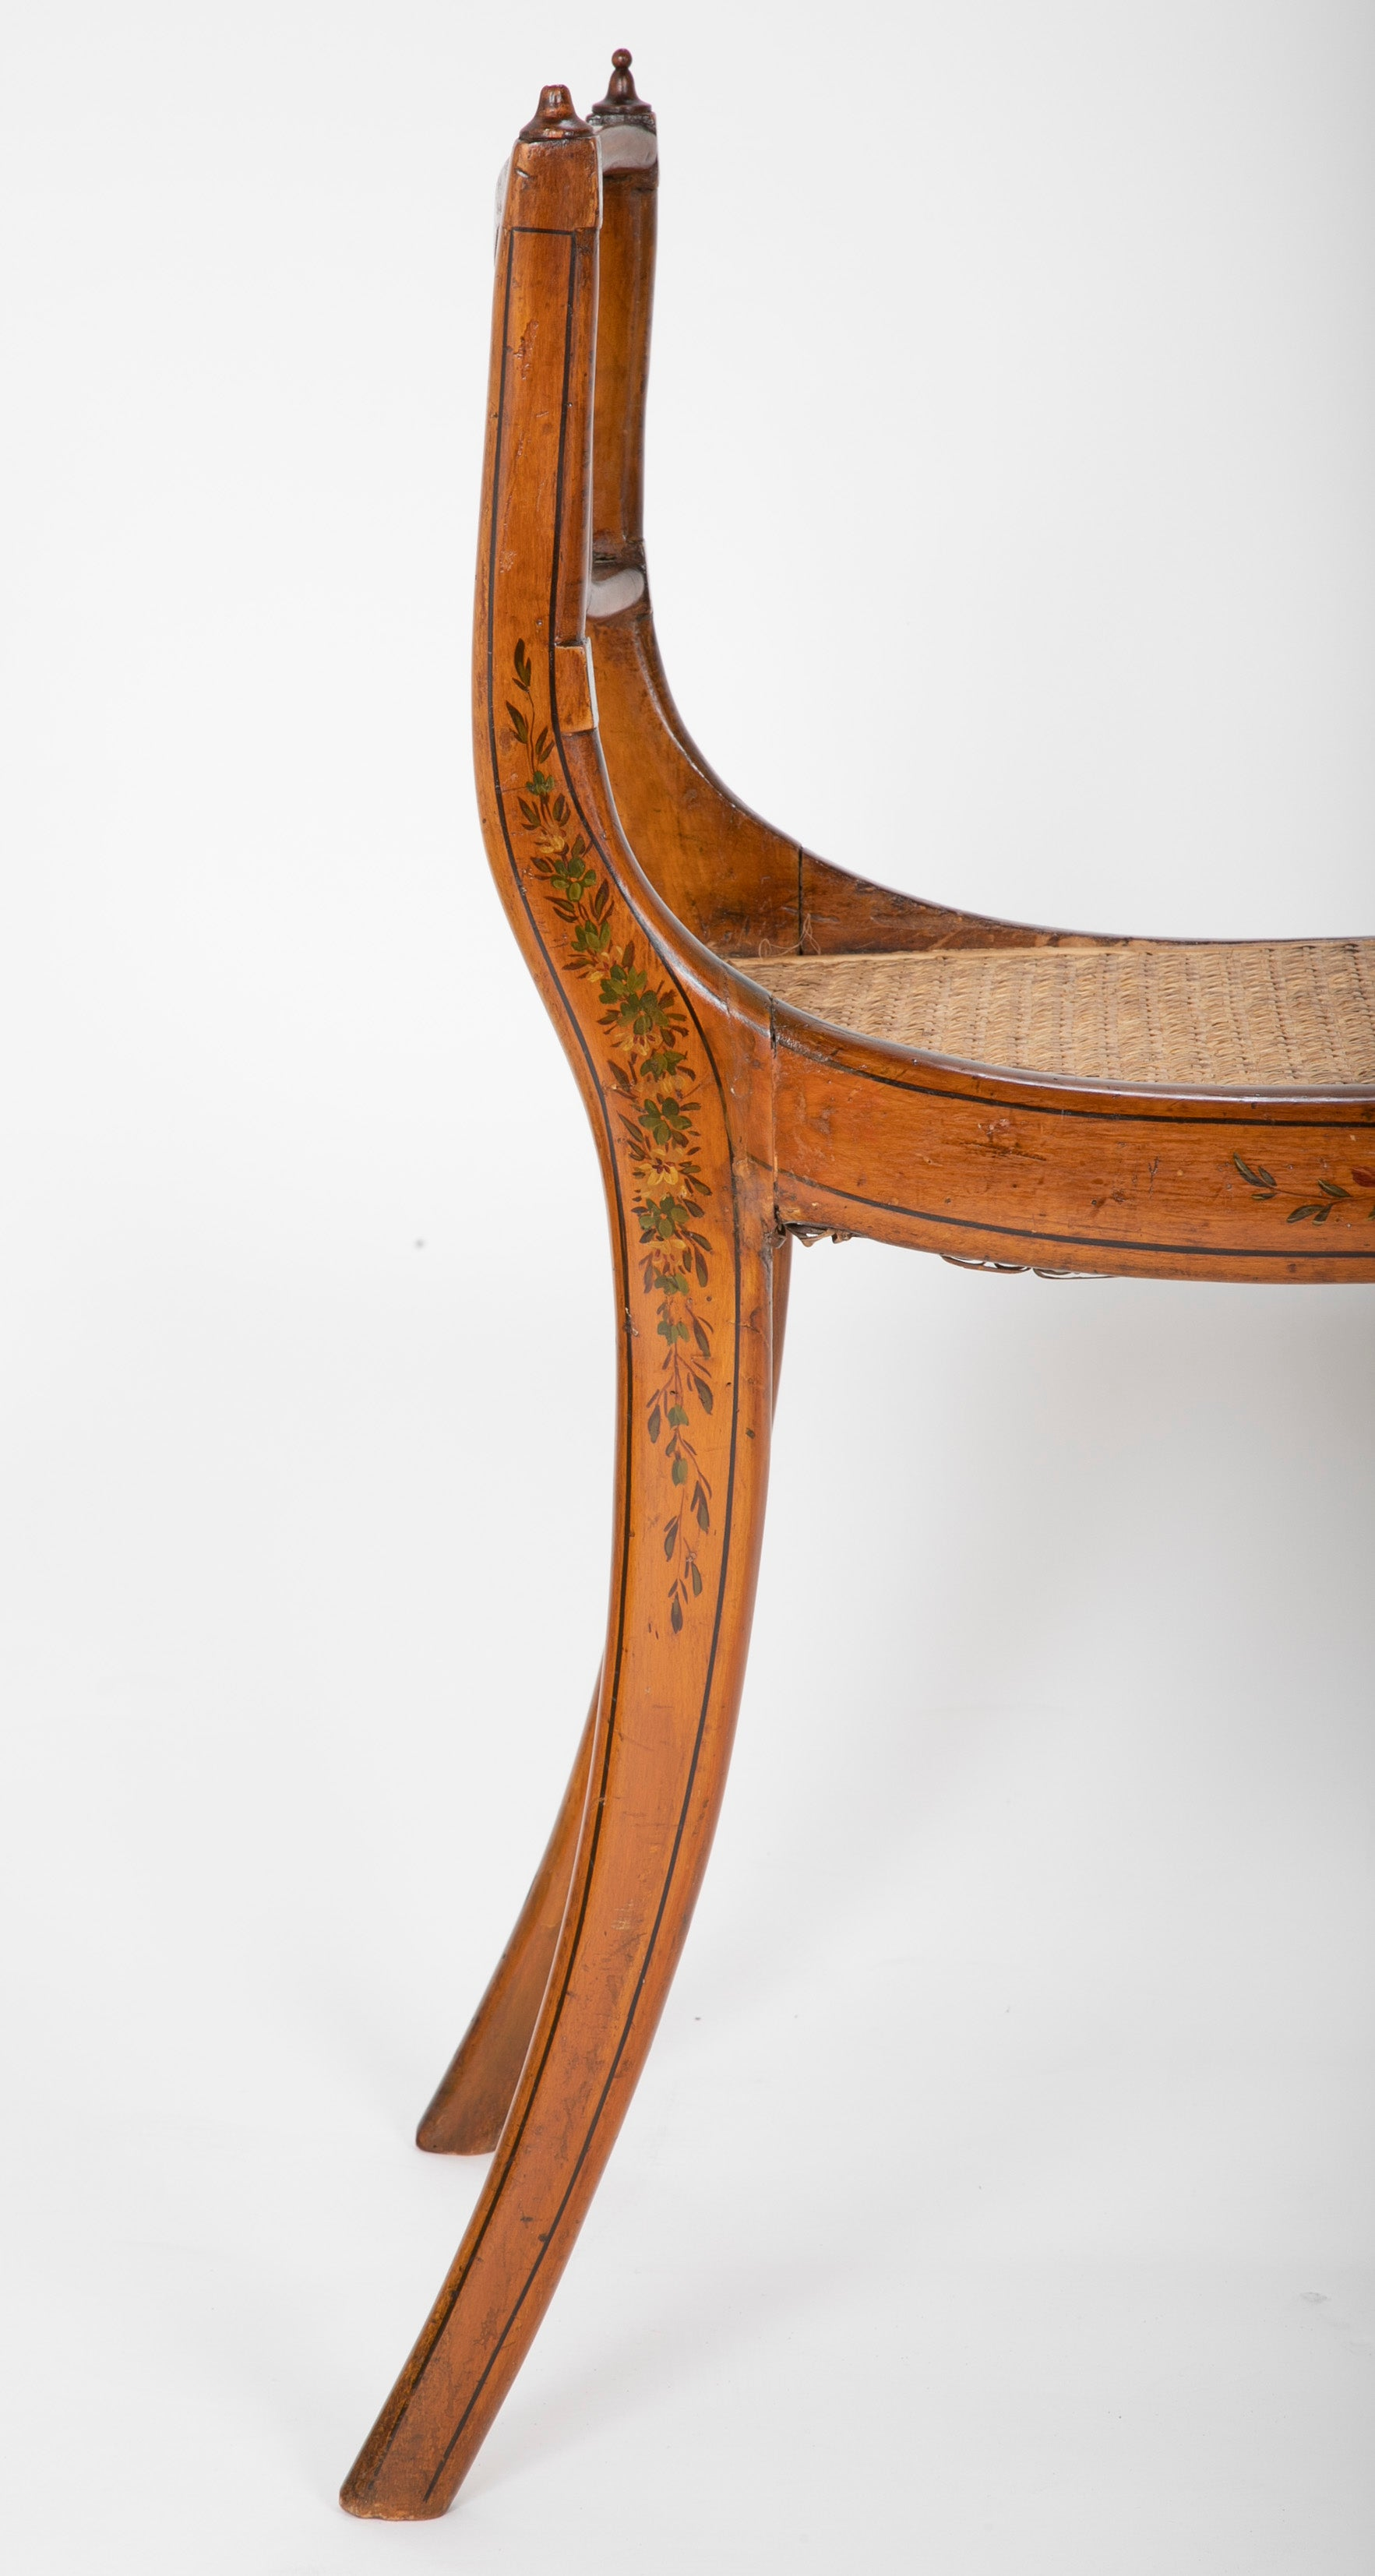 Regency Satinwood Floral Decorated Caned Seat Bench